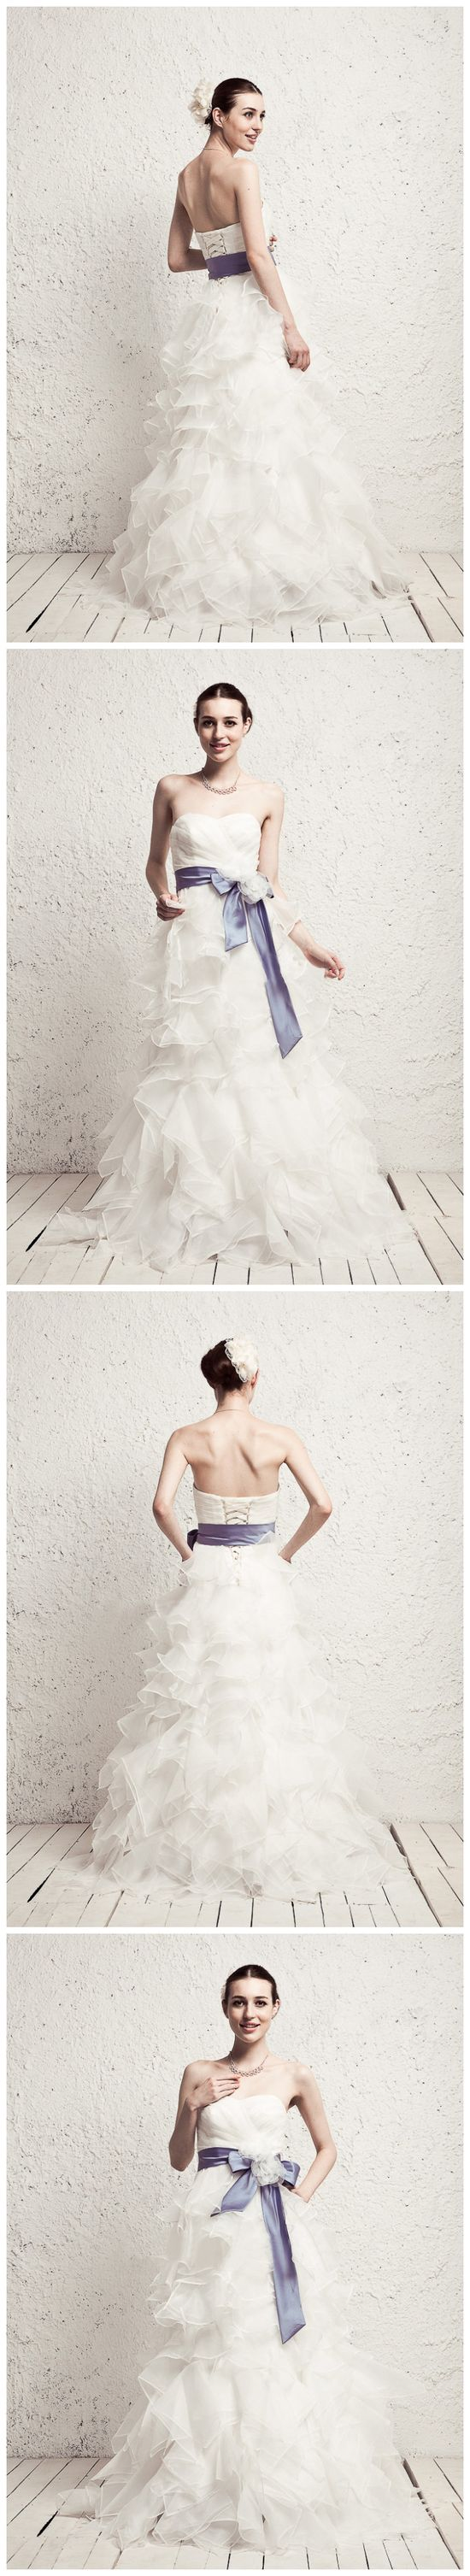 Wedding Dress With Colored Belt